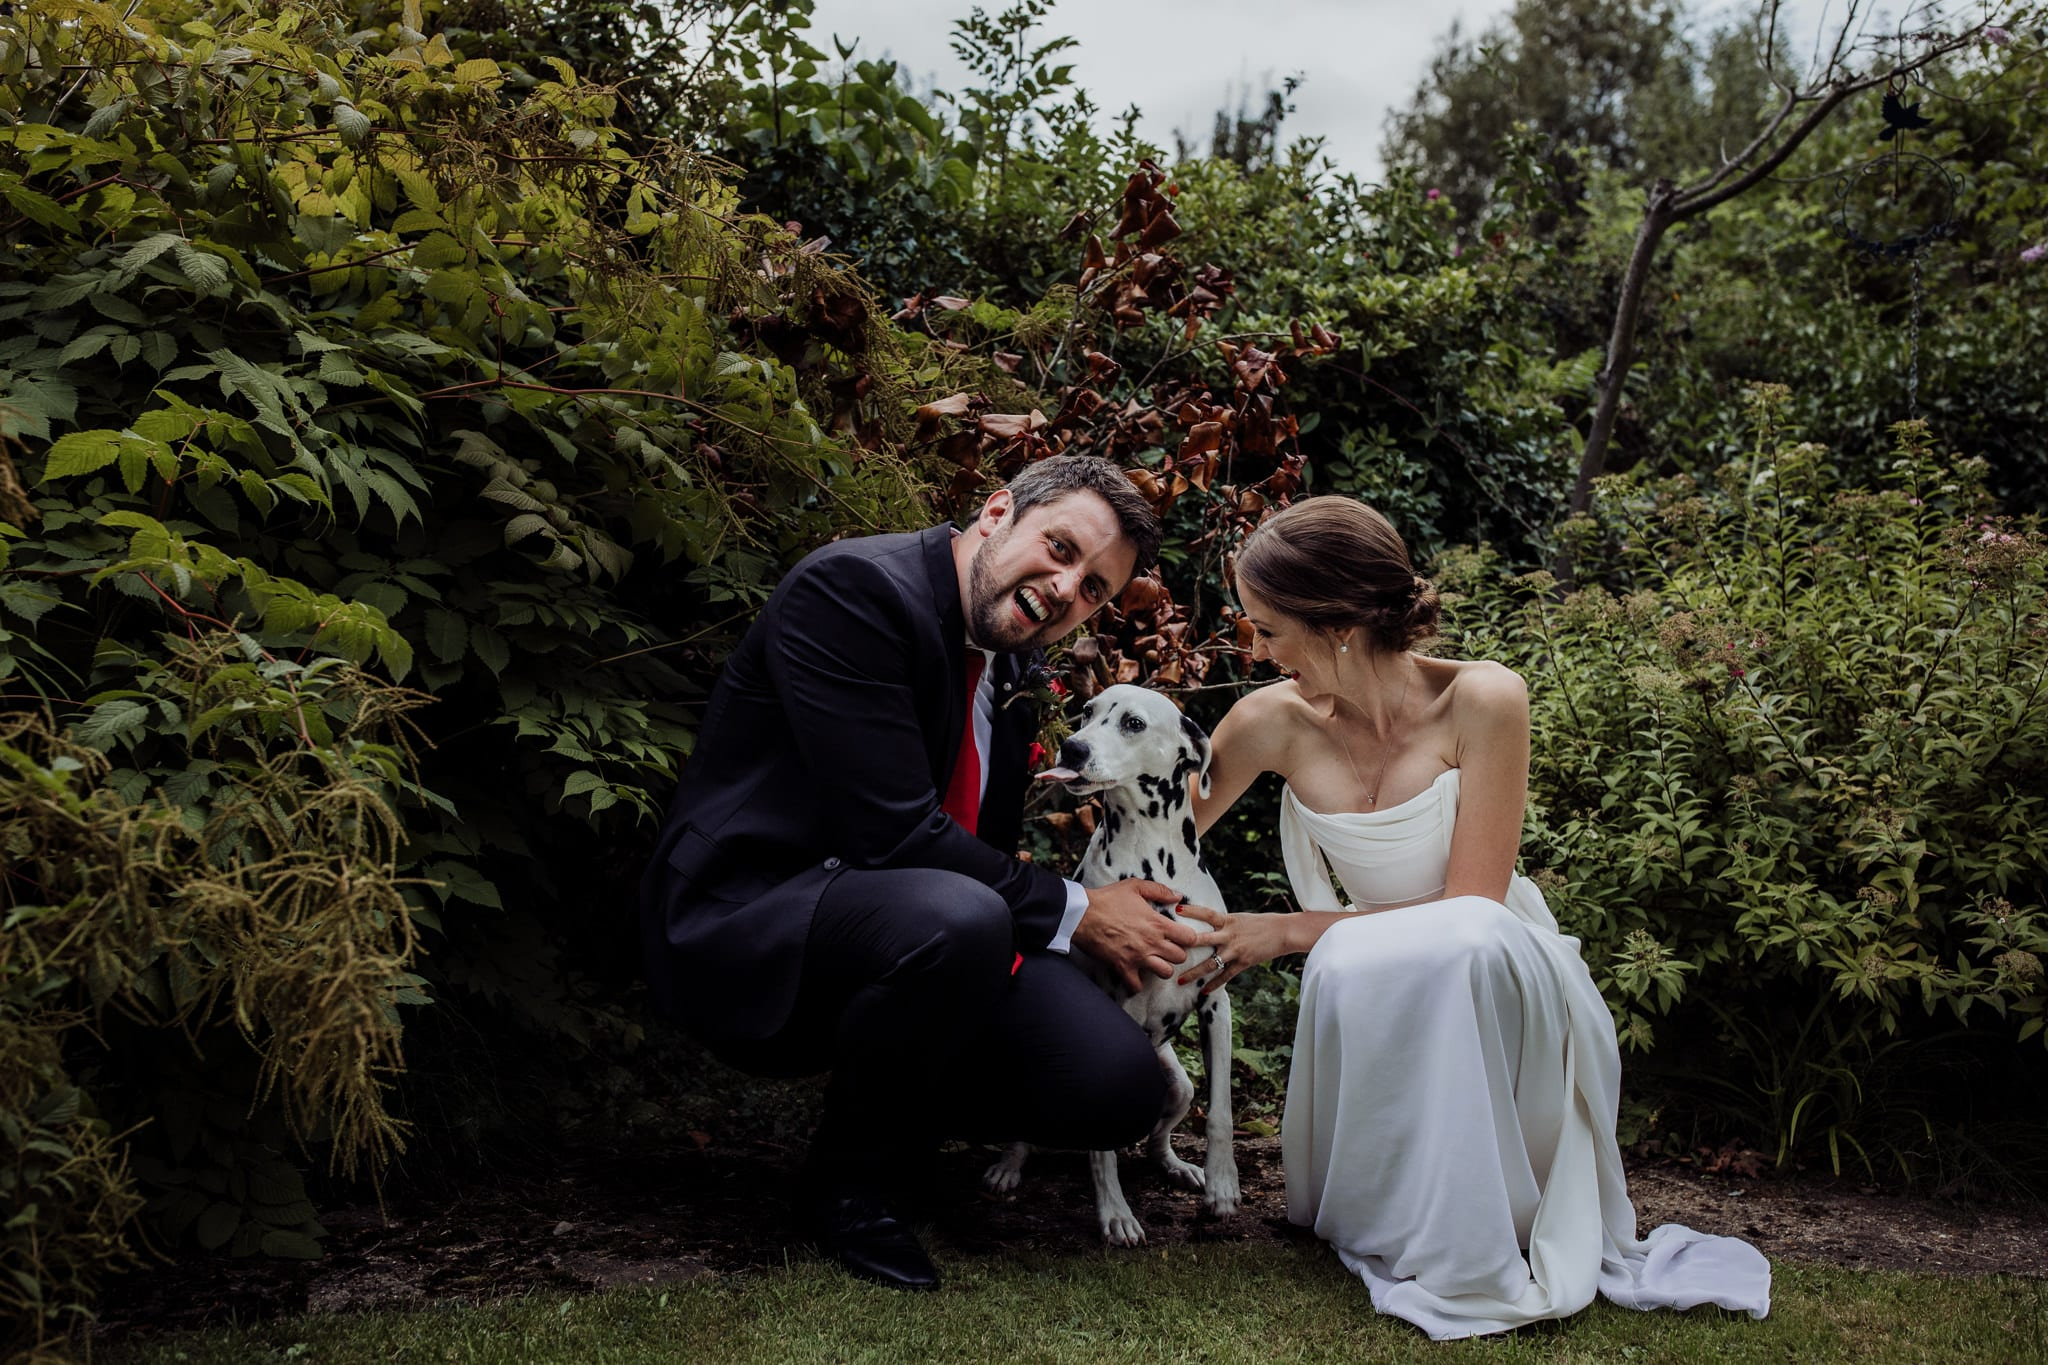 bride and groom portrait with their dog sticking his tongue out